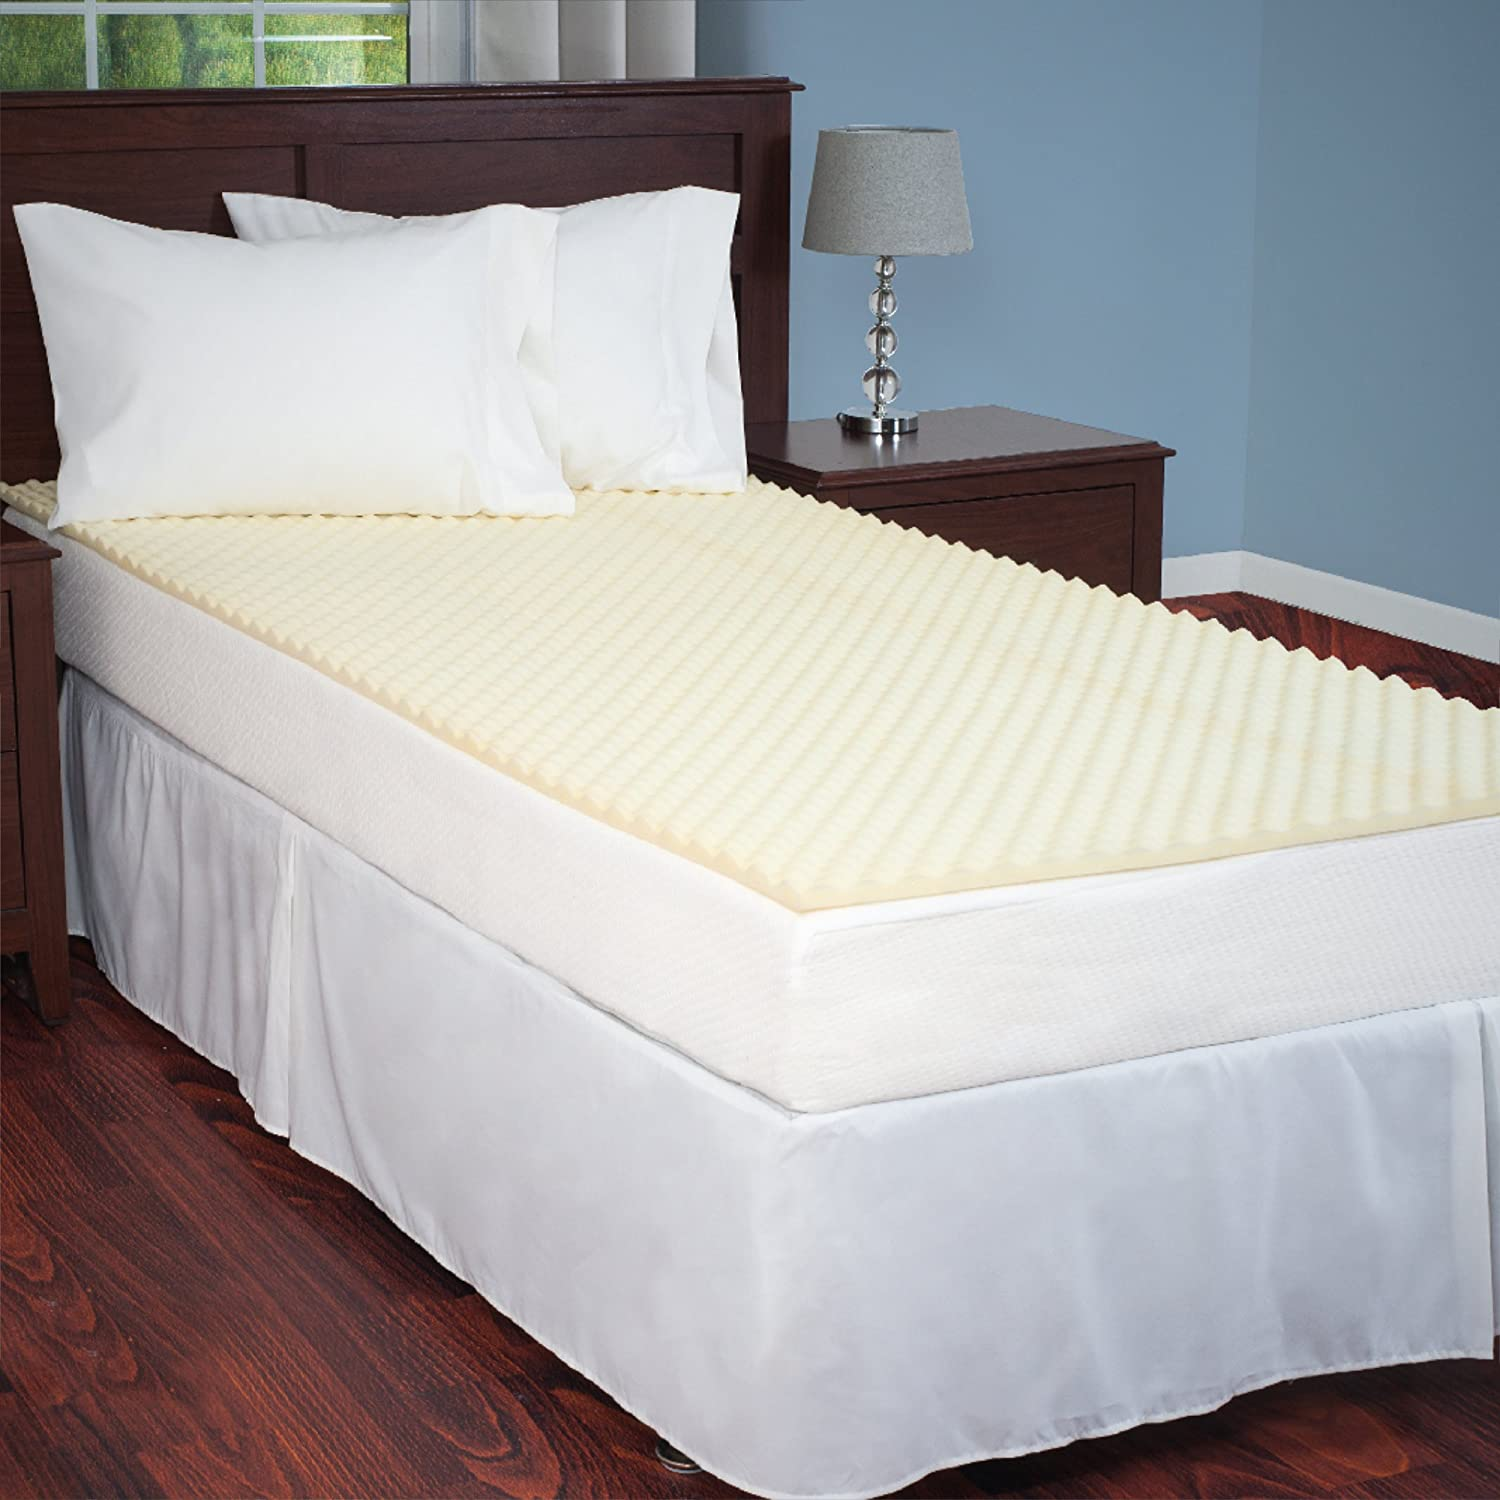 twin mattress topper. Interesting Topper Amazoncom Egg Crate Mattress Topper Twin XL Designed To Add Extra Comfort  And Support Great For Dorms Hospital Beds Cots Campers More By Everyday  Throughout I